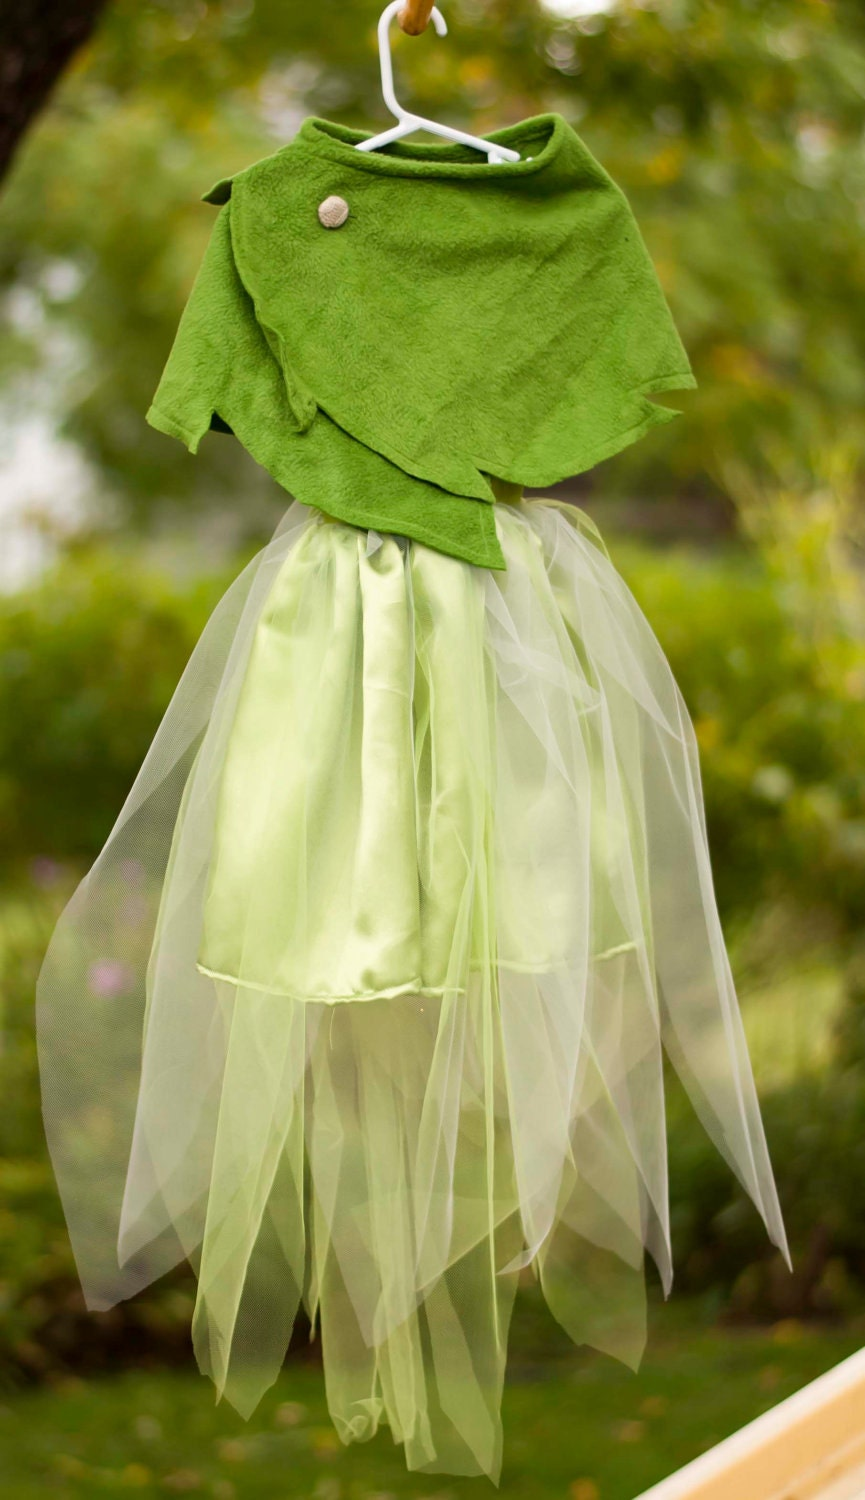 reserved tinkerbell costume with leaf green wrap for melissa